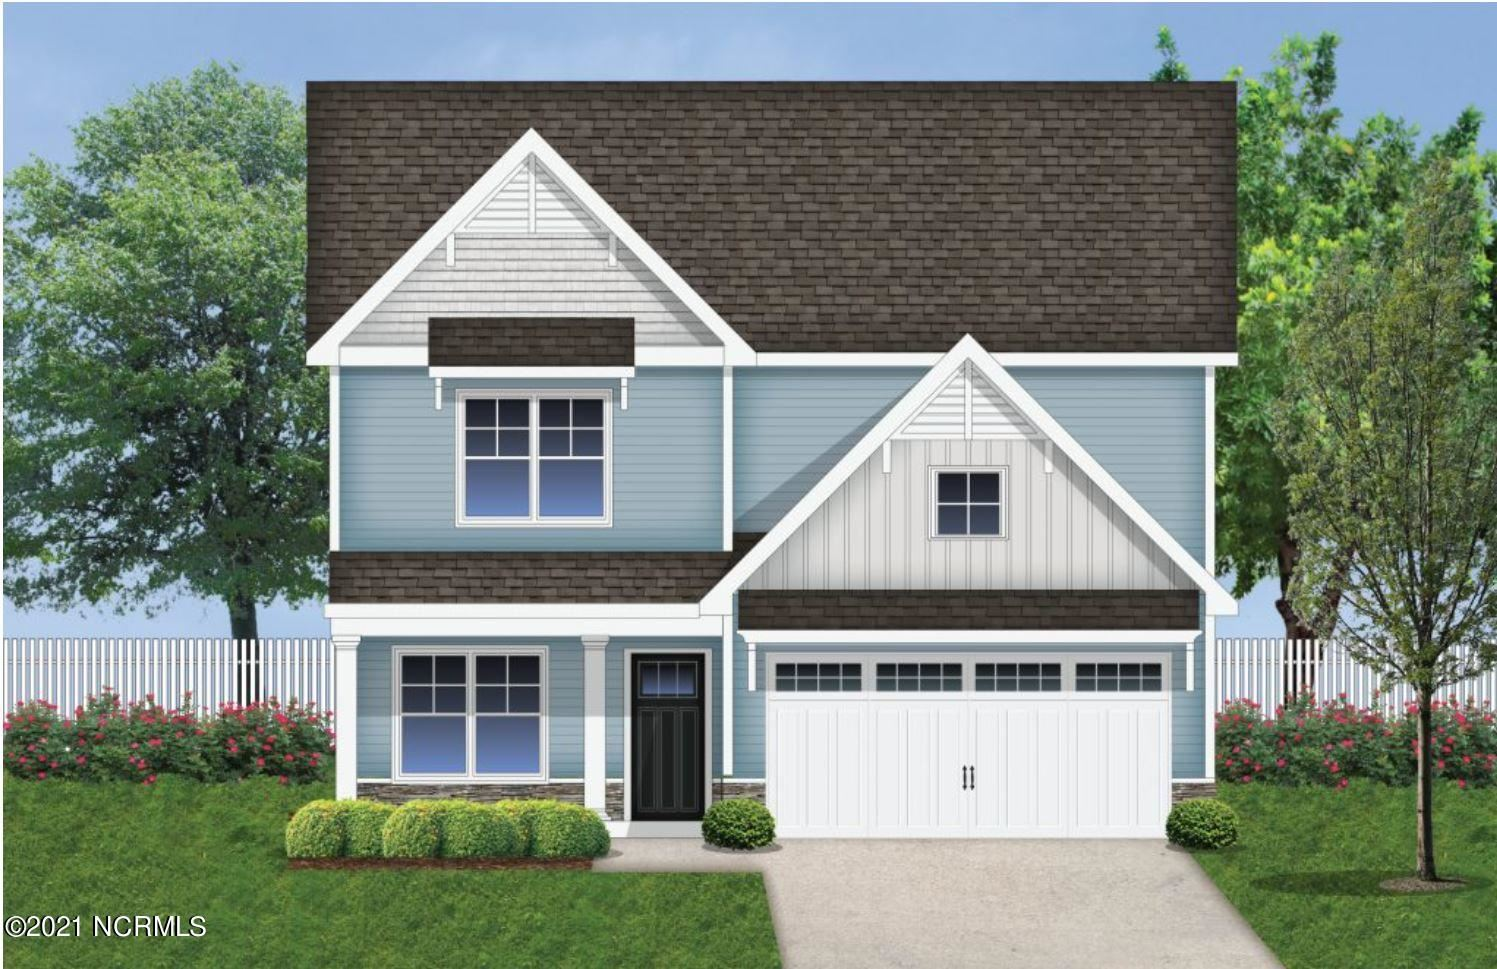 Photo for 3734 Spicetree Drive, Wilmington, NC 28412 (MLS # 100270022)